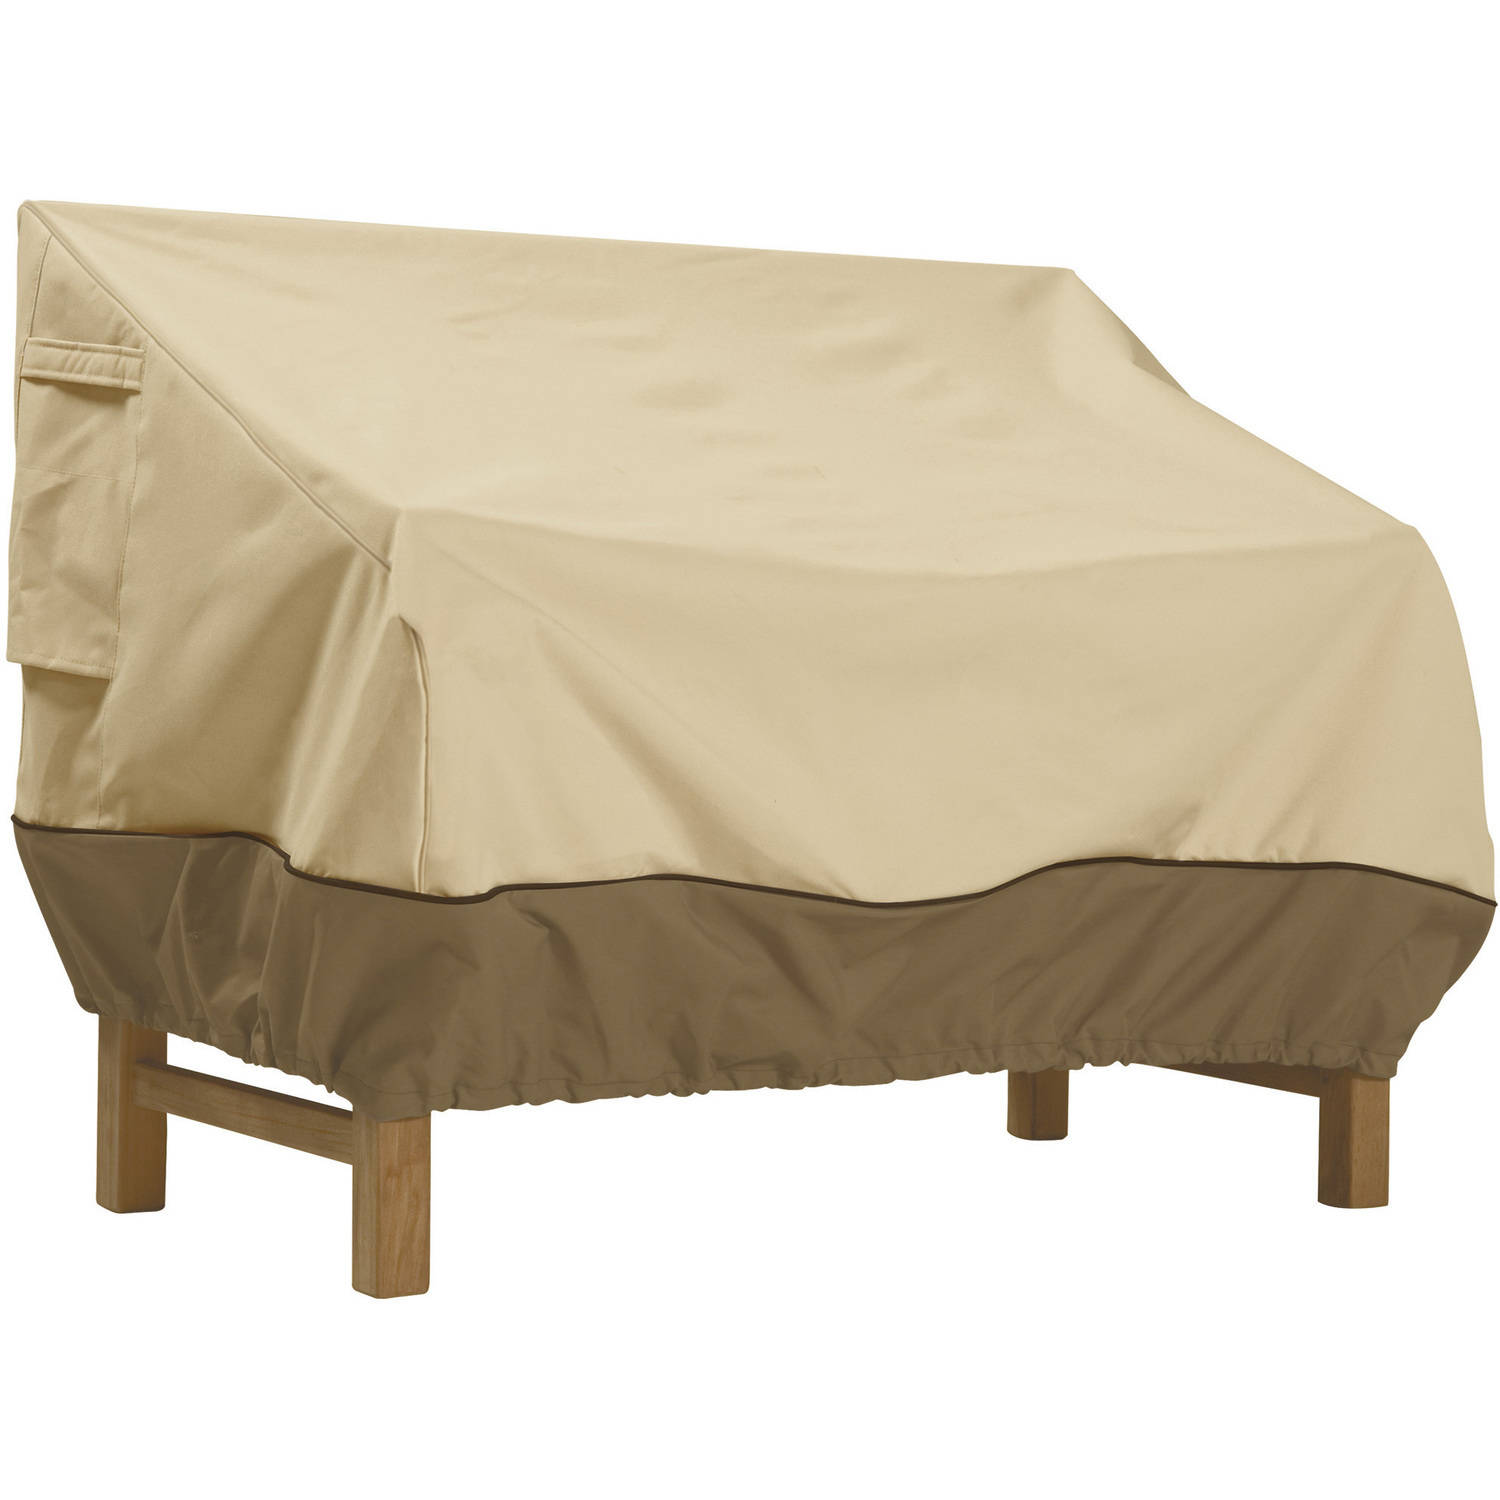 "Classic Accessories Veranda Patio Bench and Loveseat Furniture Storage Cover, Large, fits up to 88""L x 32.5""W"